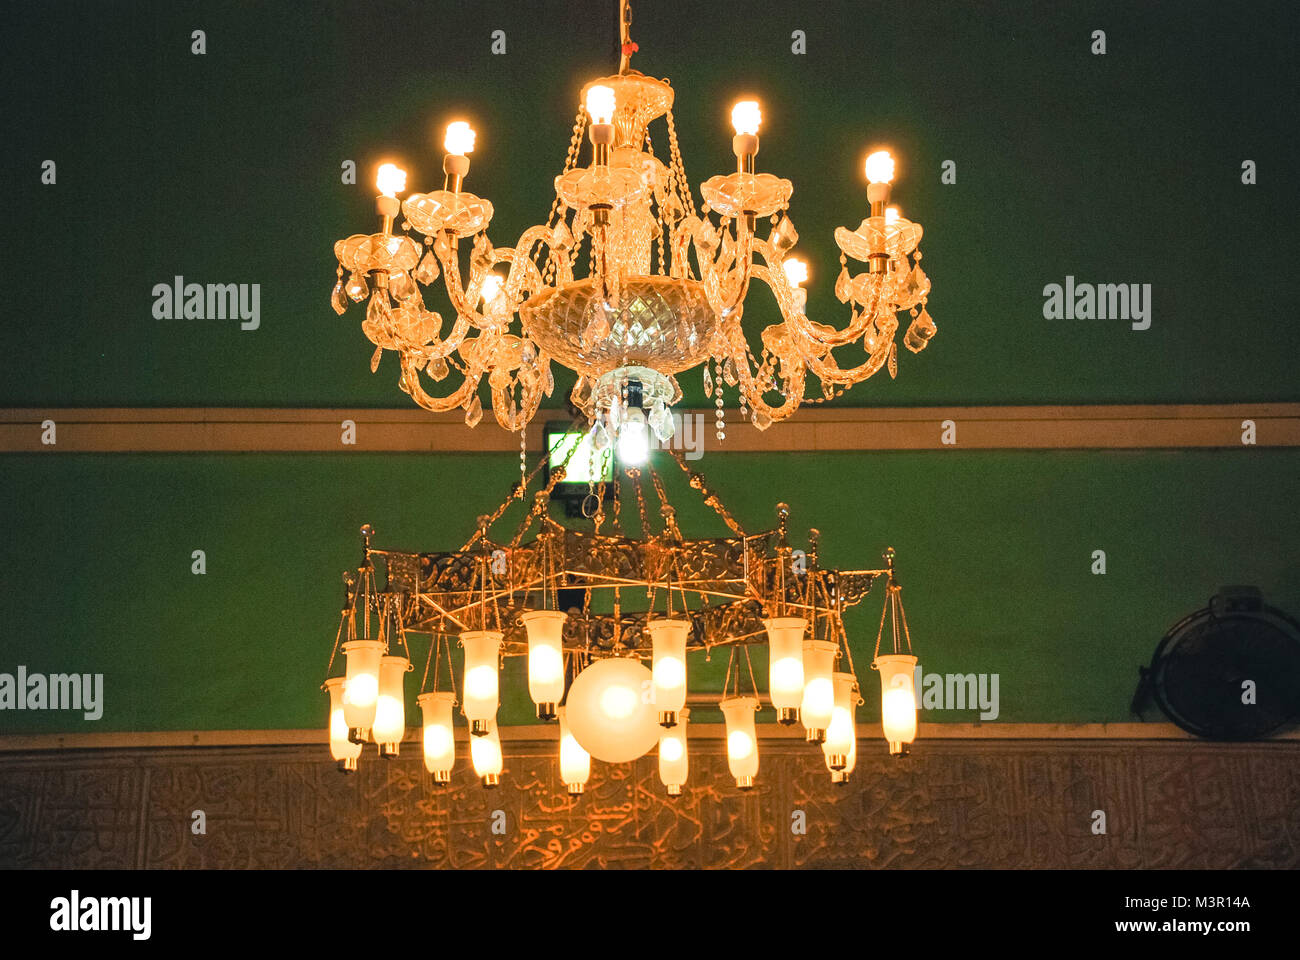 Chandelier cave stock photos chandelier cave stock images alamy horizontal picture of the two amazing chandeliers inside cave of machpela and patriarchs in hebron aloadofball